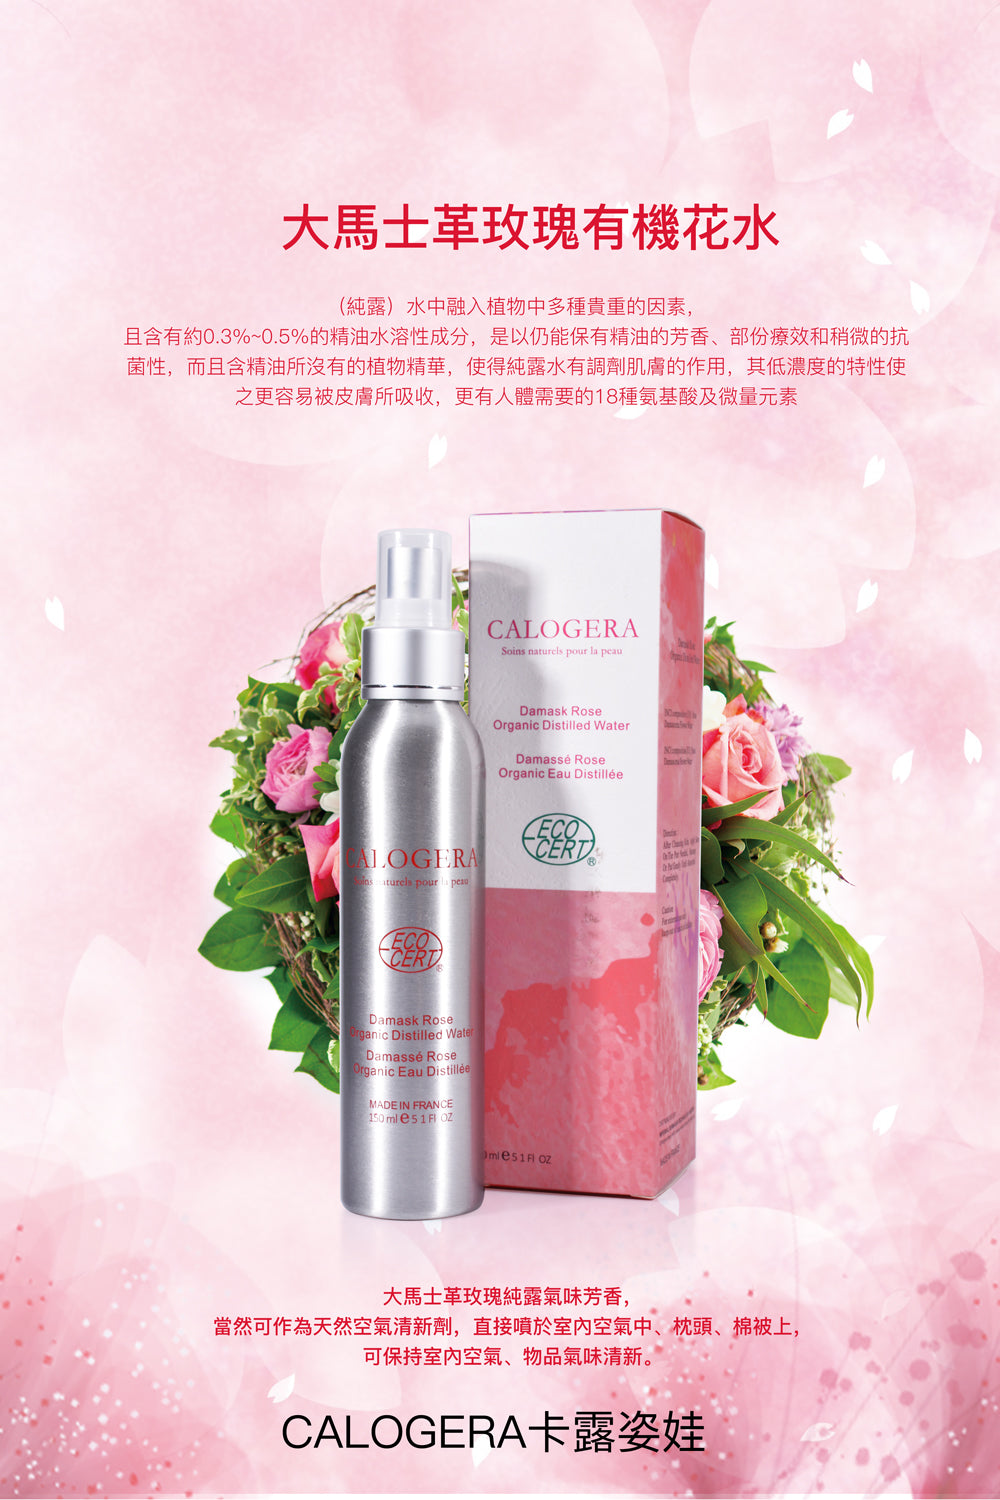 大馬士革玫瑰有機花水 Damask Rose Organic Distilled Water